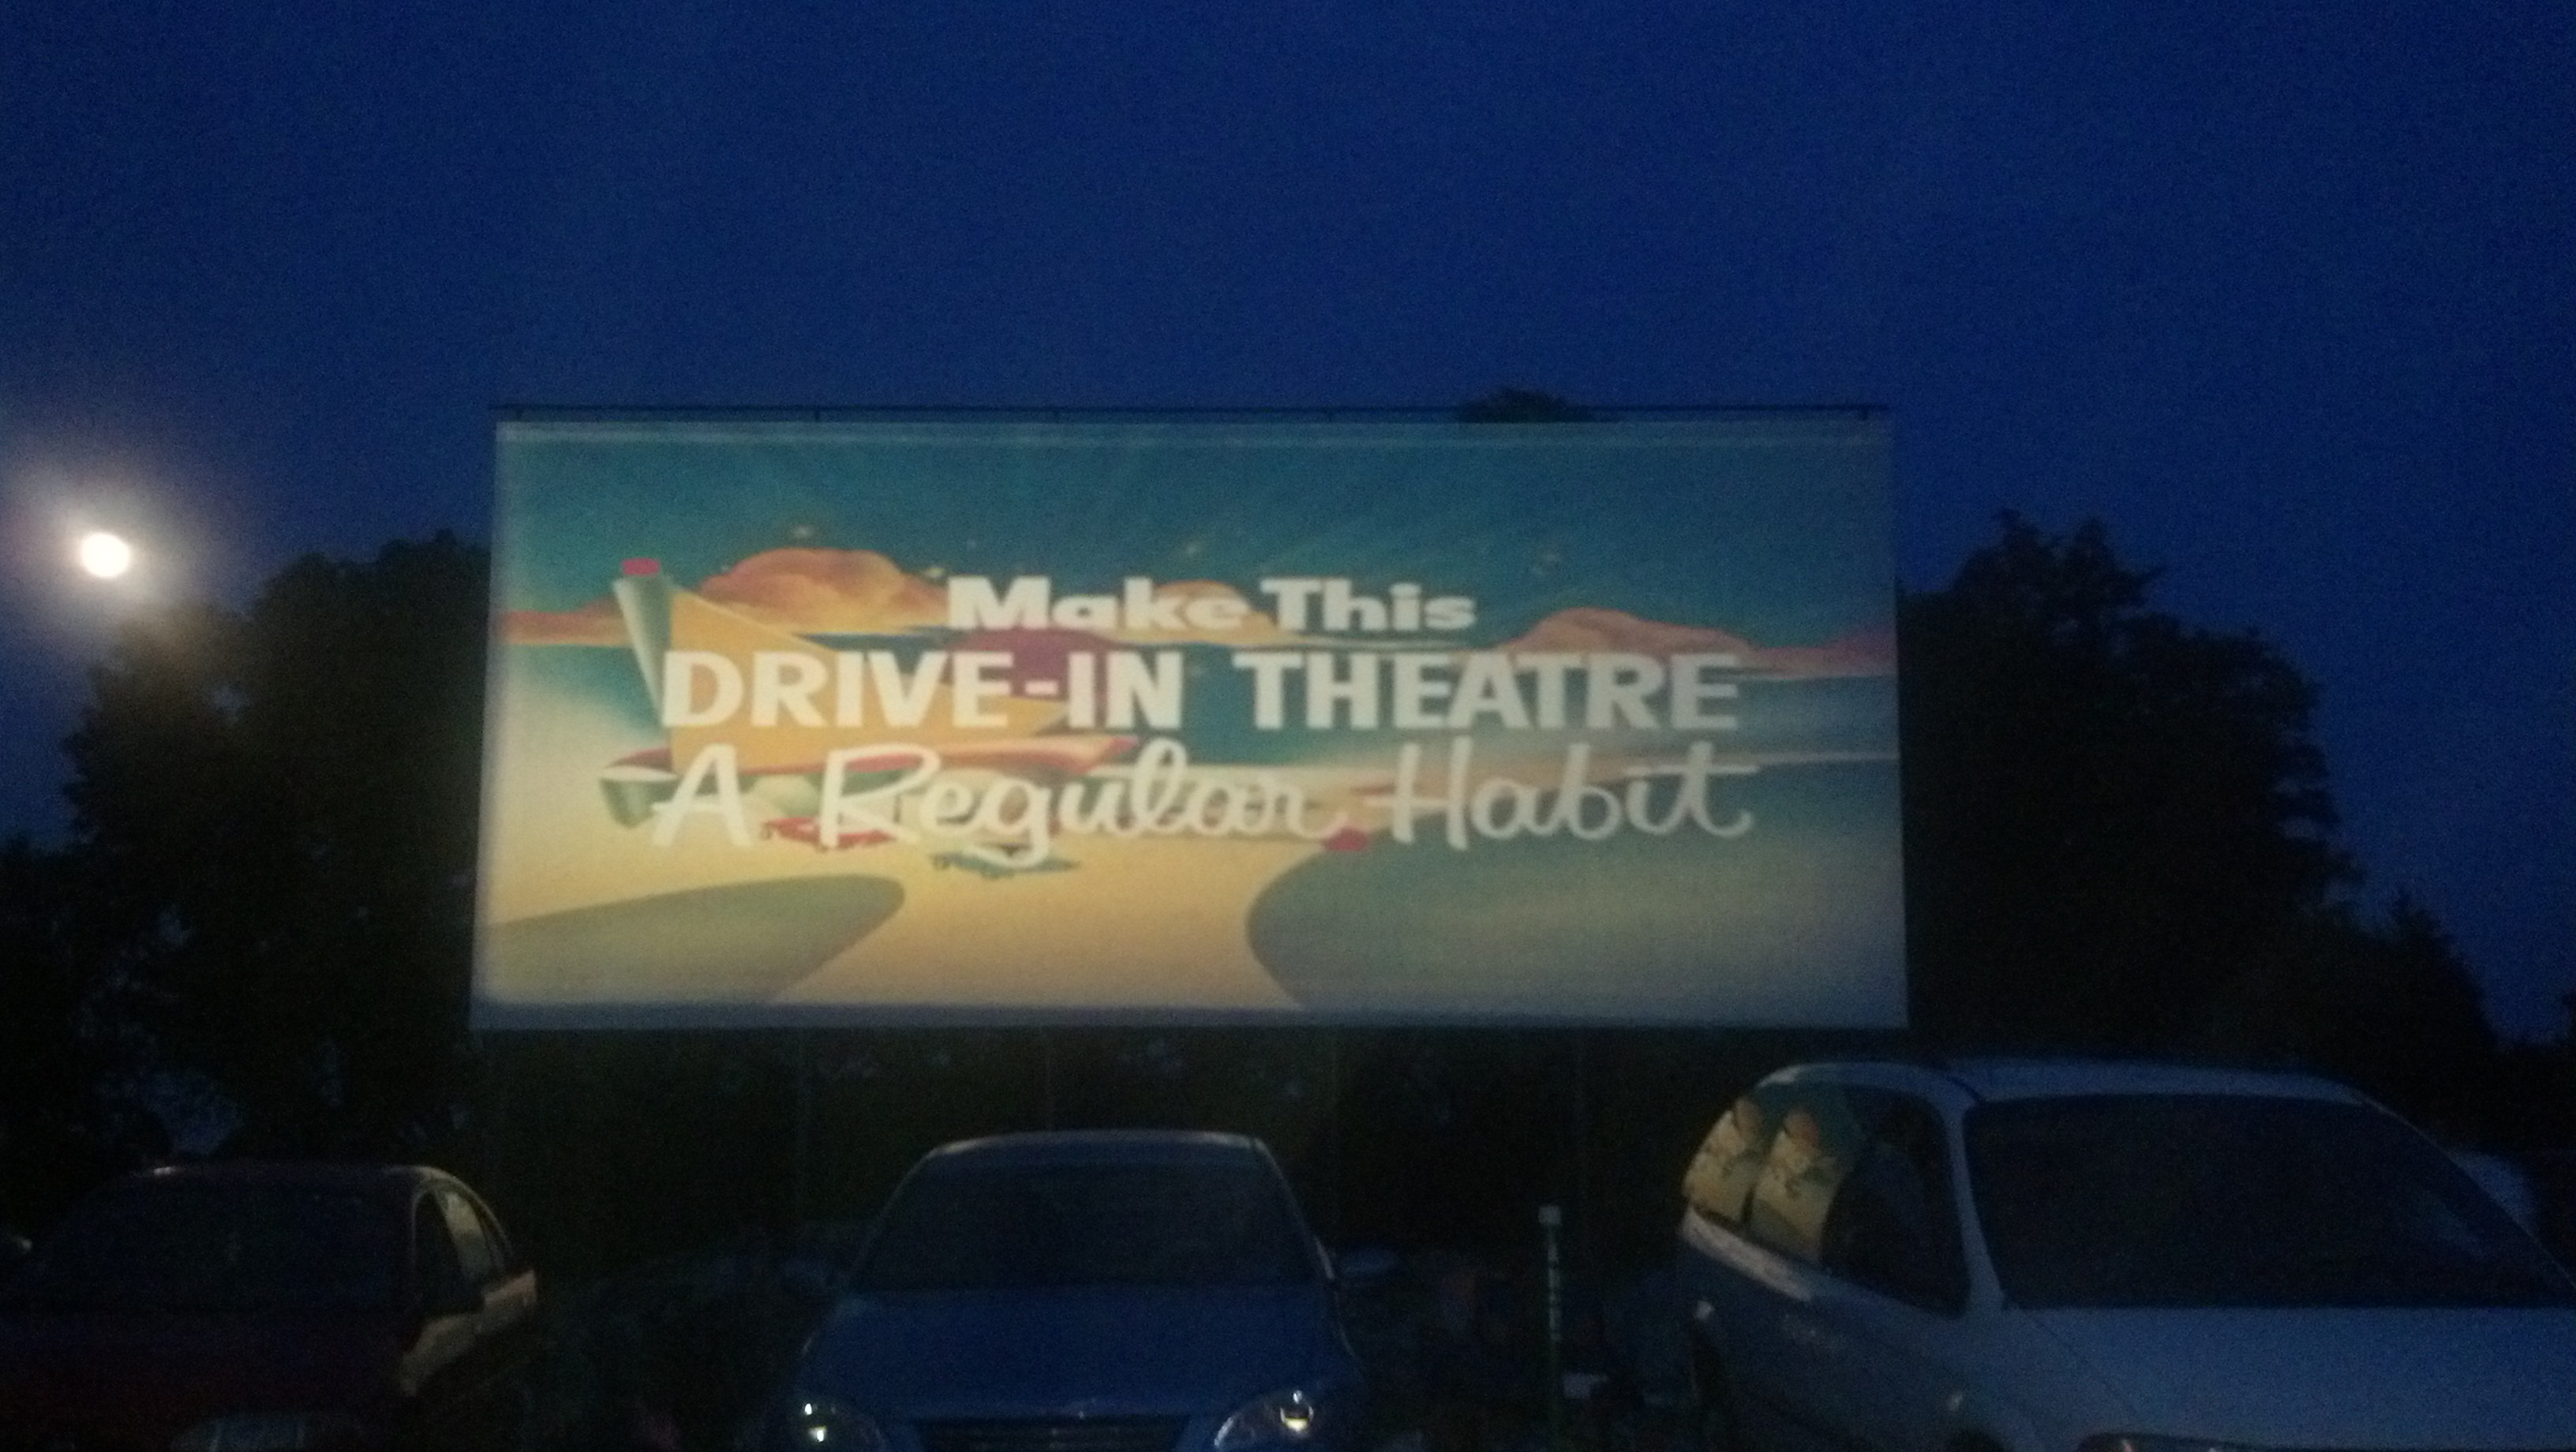 drivein movie theaters are dying but they shouldnt be